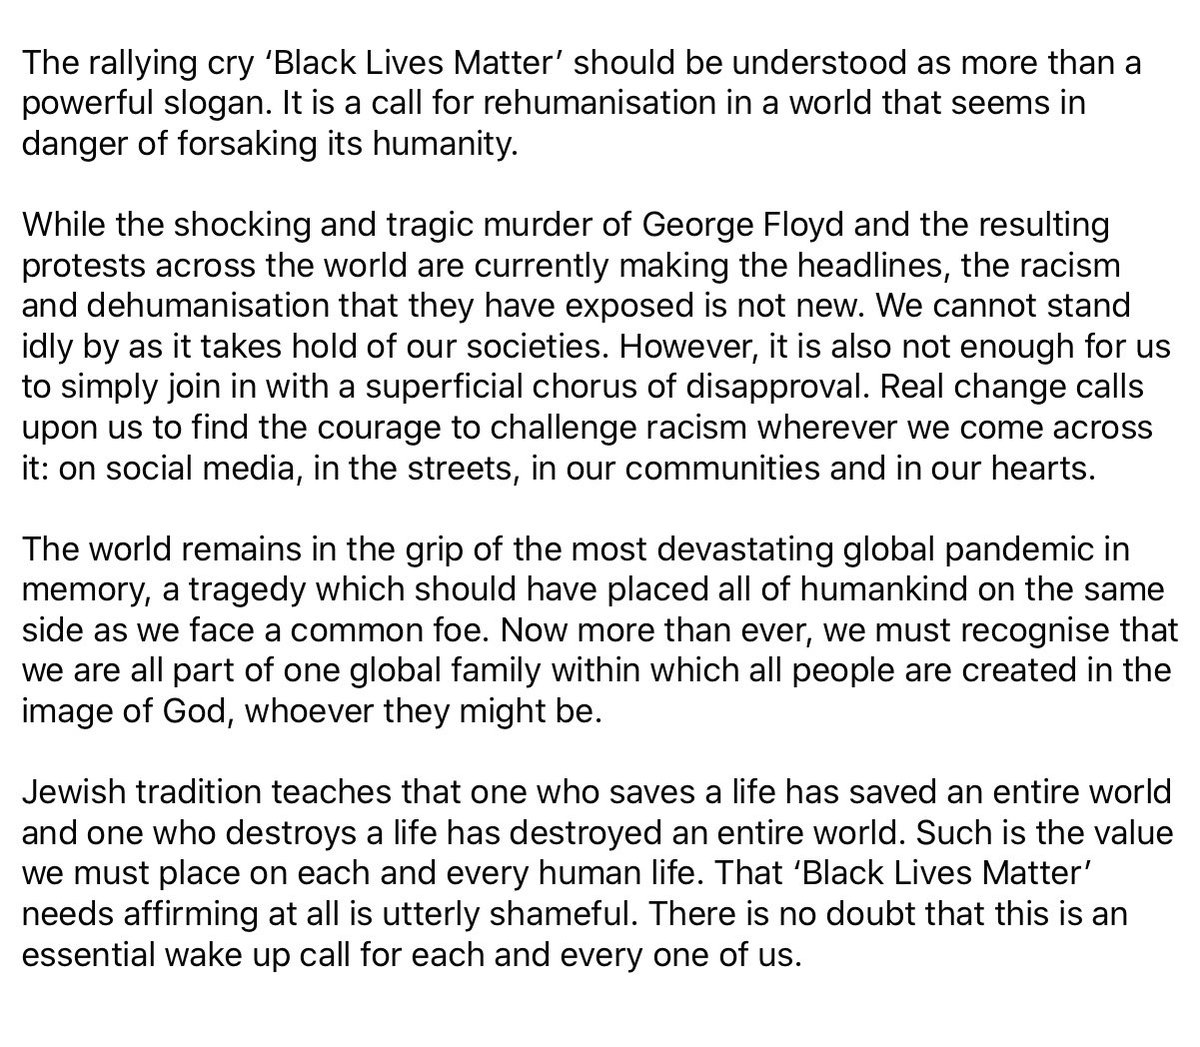 """Chief Rabbi: """"That #BlackLivesMatter needs affirming at all is utterly shameful. There is no doubt that this is an essential wake up call for each and every one of us."""" https://t.co/umrWuuj8LL"""